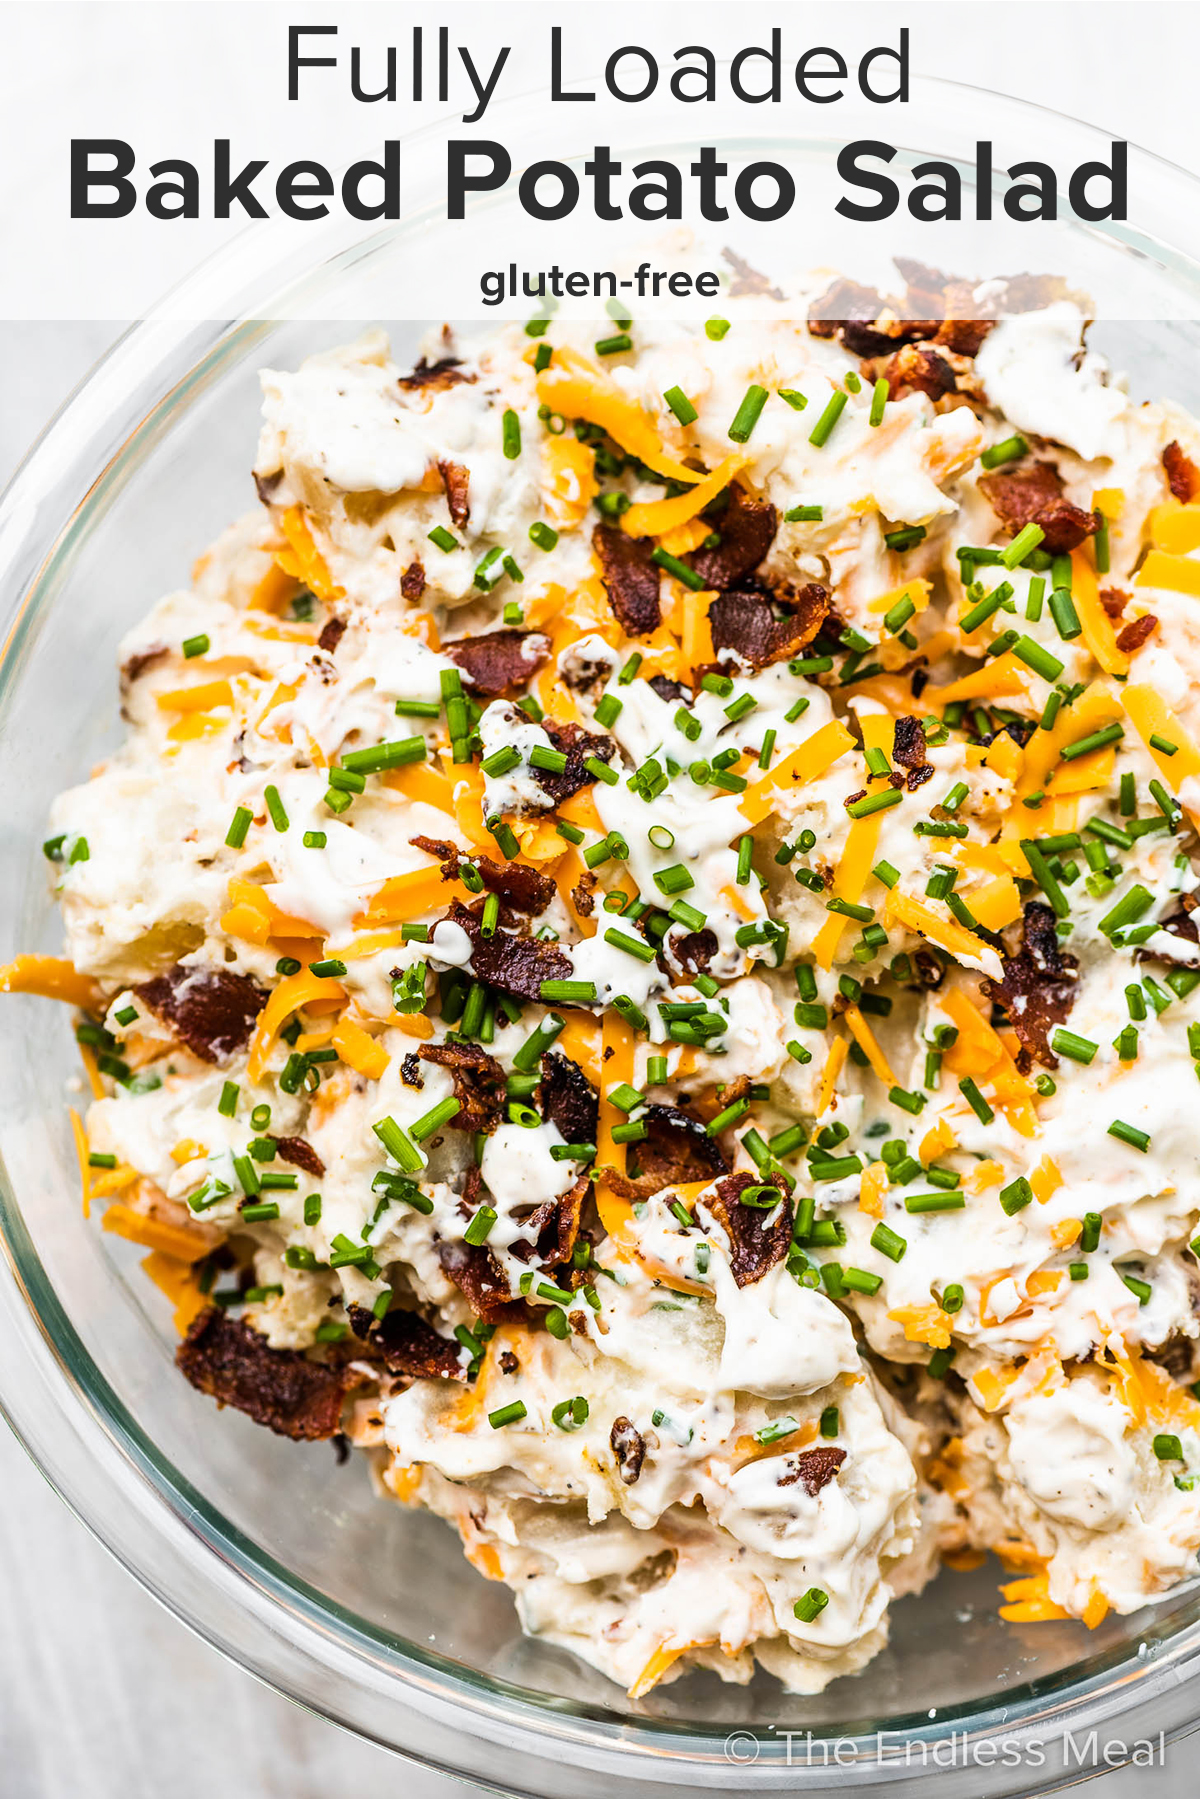 Loaded baked potato salad in a glass serving bowl with the recipe title on top of the picture.